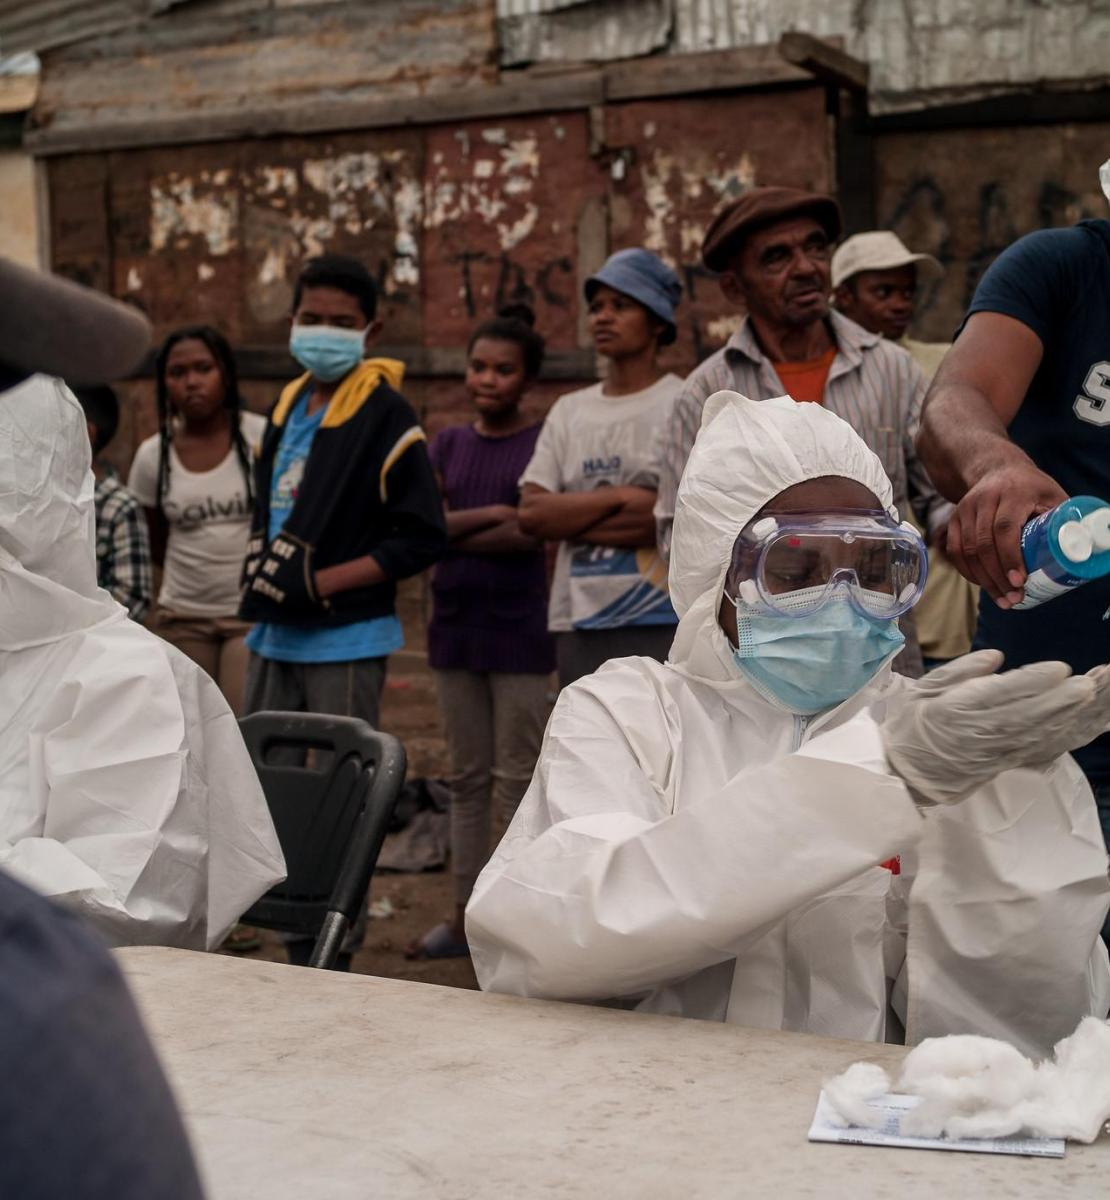 Image shows people waiting behind a table of healthcare workers wearing head-to-toe personal protective equipment. One man standing behind the healthcare workers pours had sanitizer onto the hands of one of the workers, while a man sits in front of her and waits.